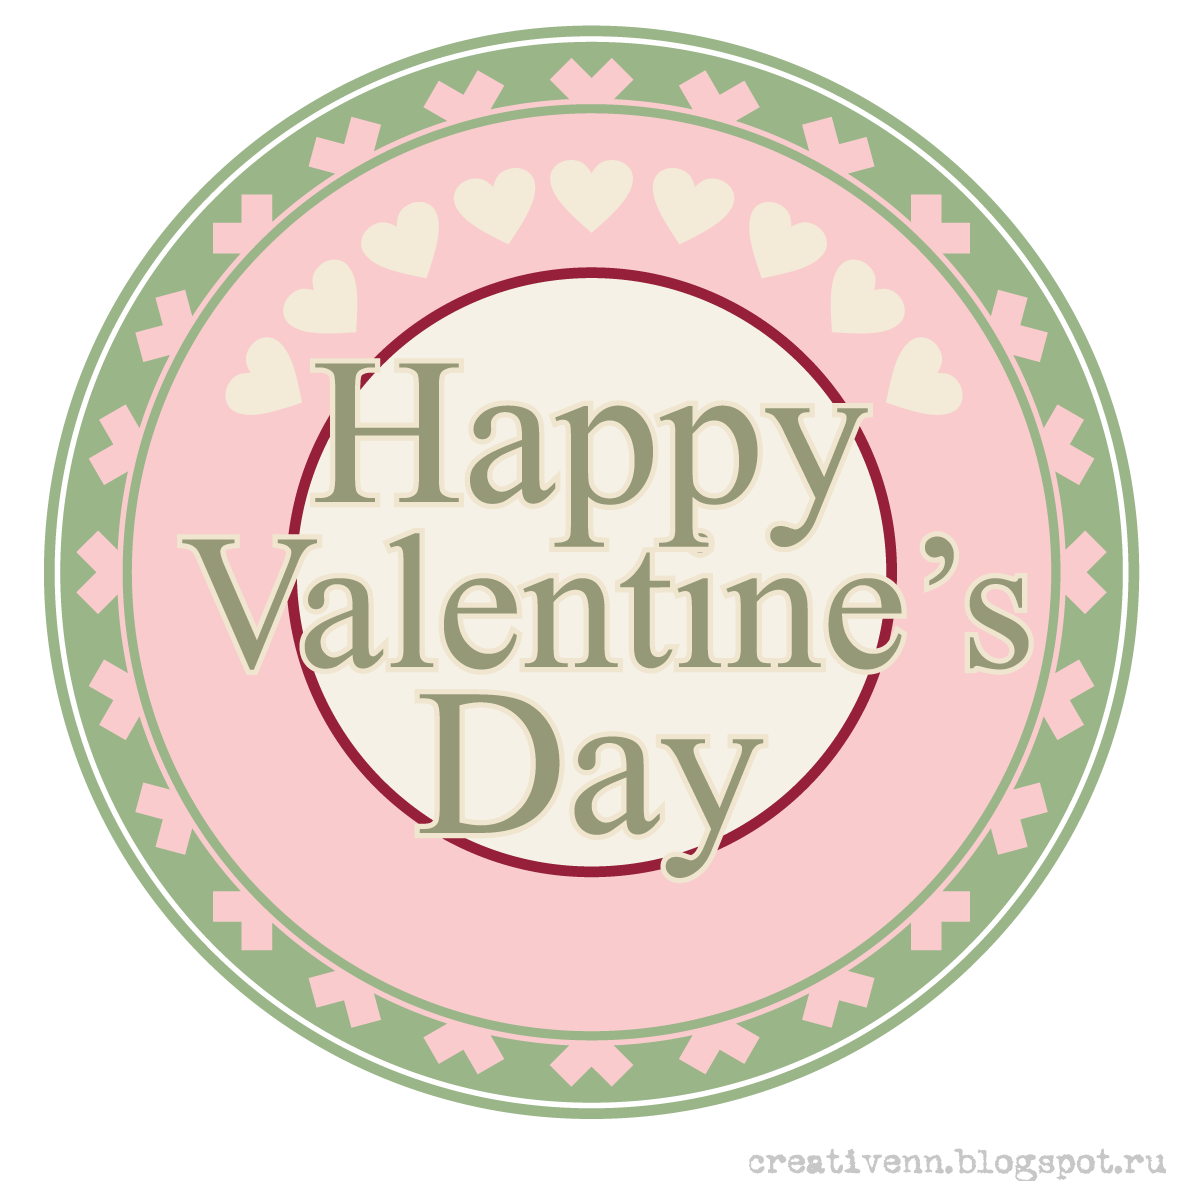 Happy Valentine's Day! Scrapbooking.